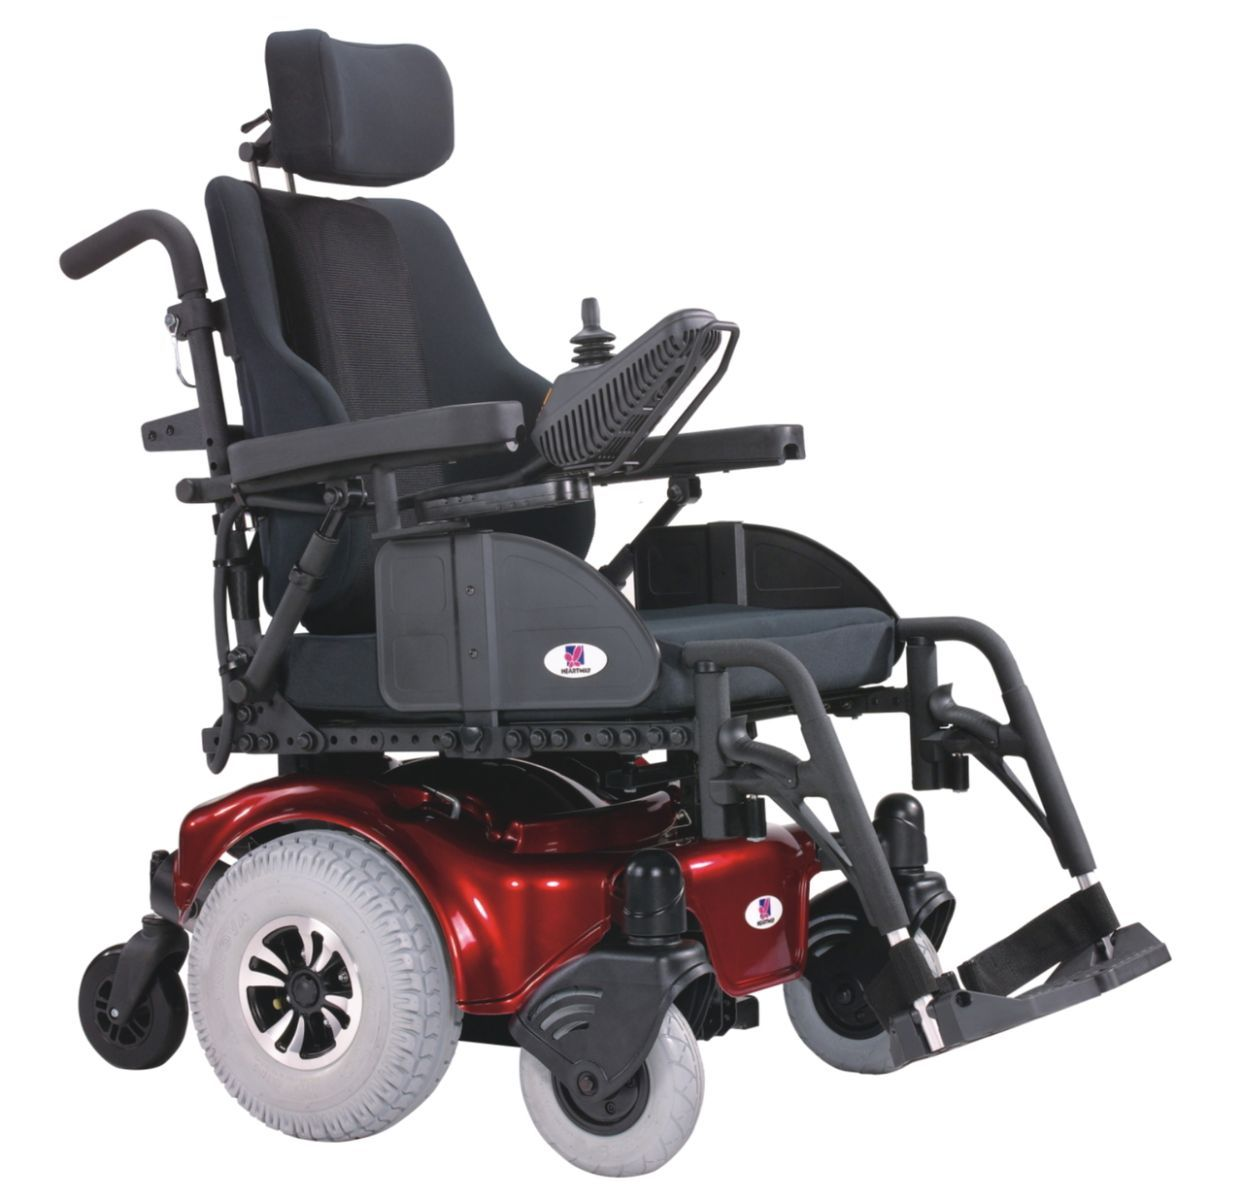 Allure Heavy-Duty Power Wheelchair : Power Wheelchairs | Powered wheelchair,  Electric wheelchair, Wheelchair